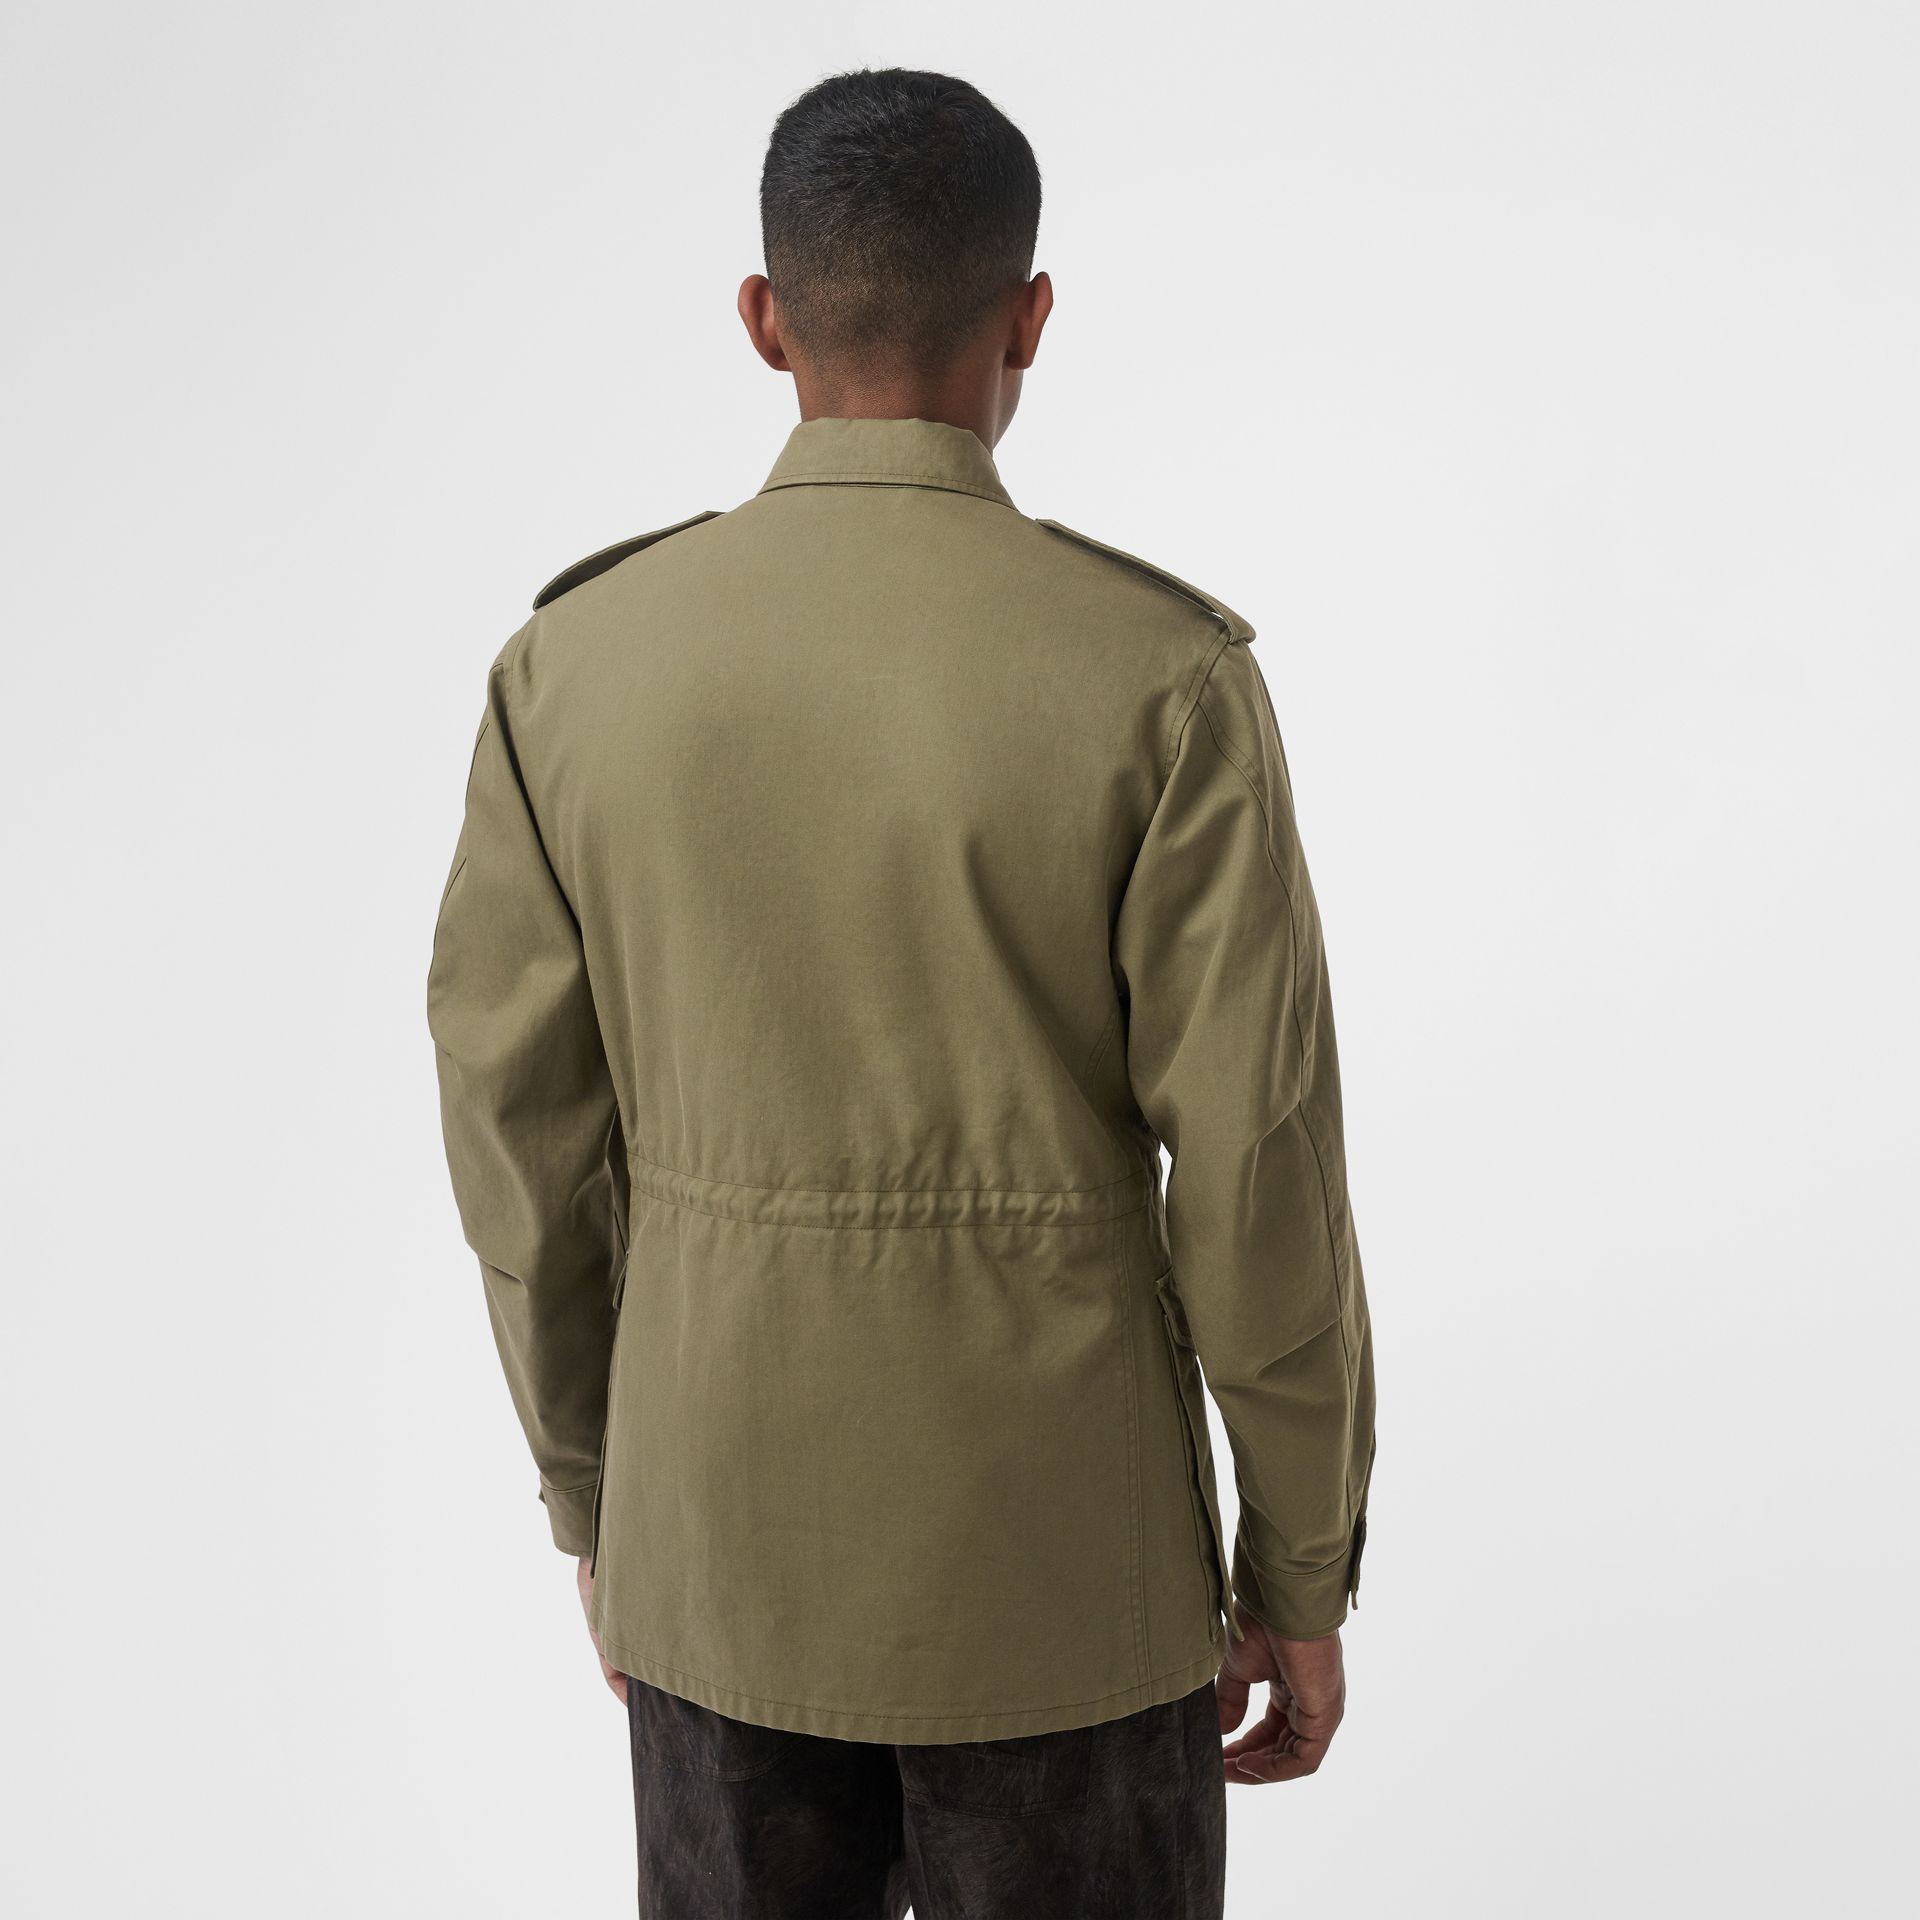 Logo Detail Cotton Field Jacket in Olive - Men | Burberry - gallery image 1